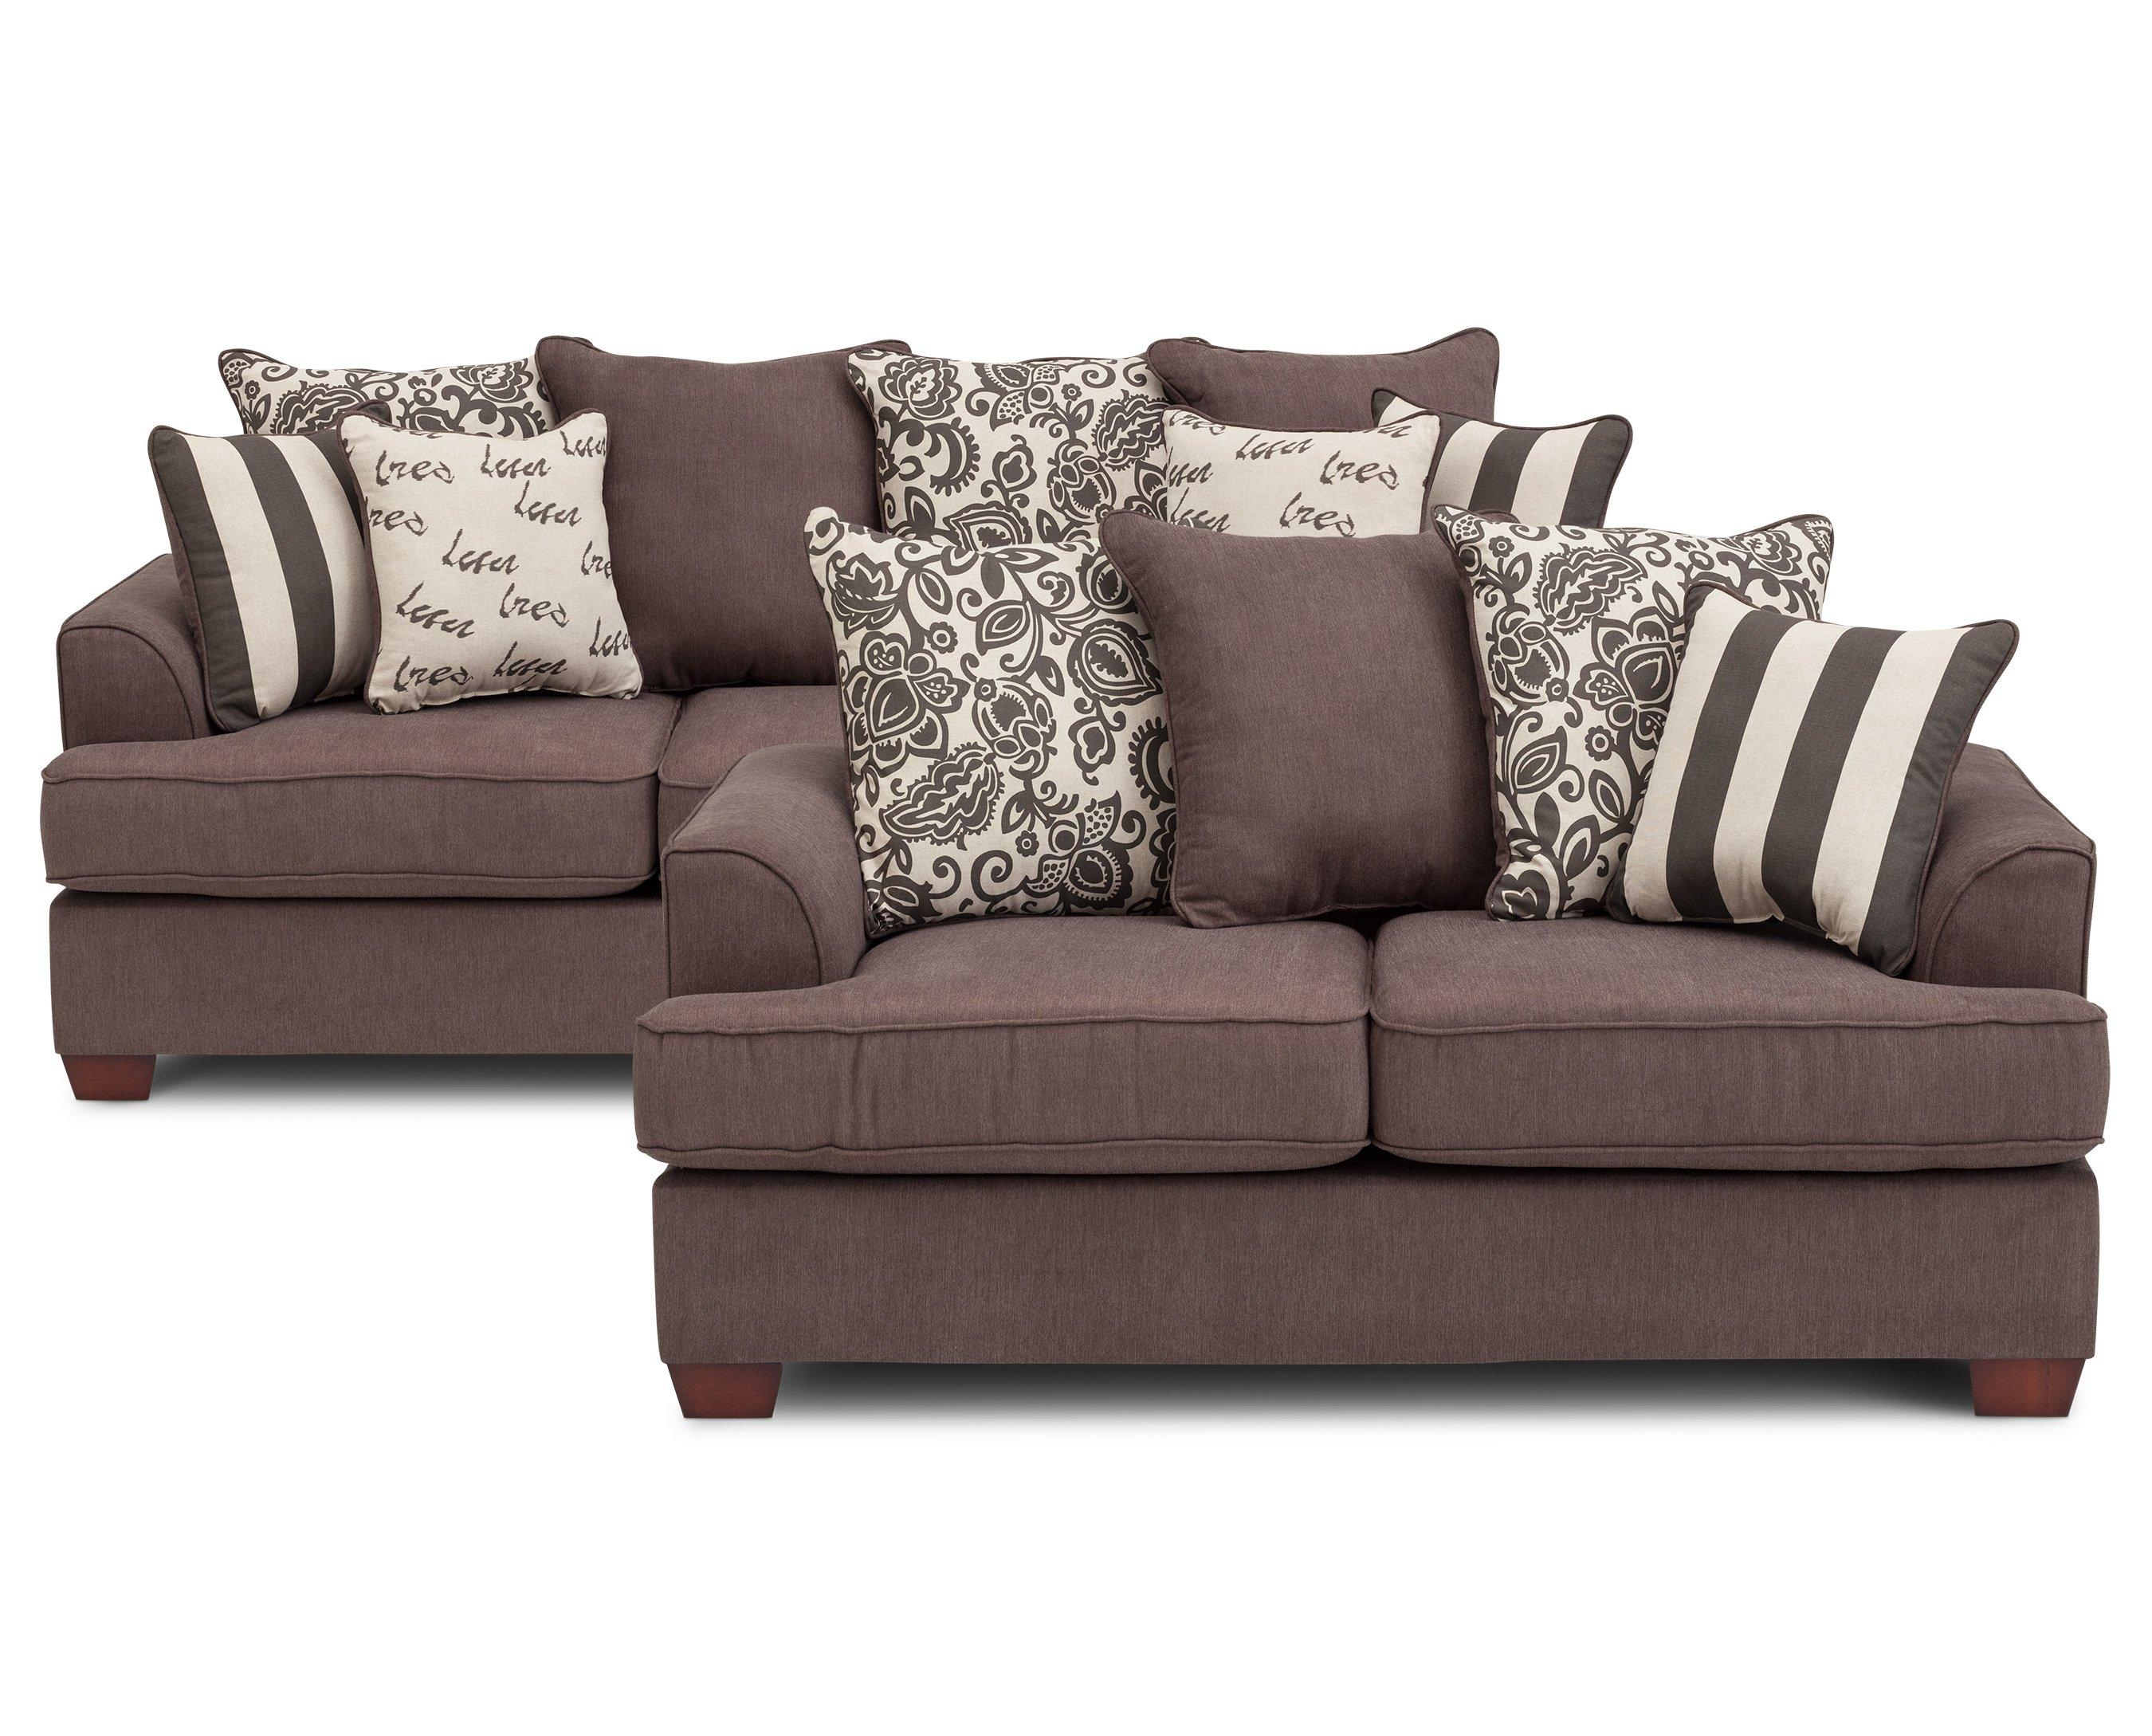 Aberdeen Sofa – Furniture Row With Regard To Sofa Mart Chairs (Image 7 of 20)